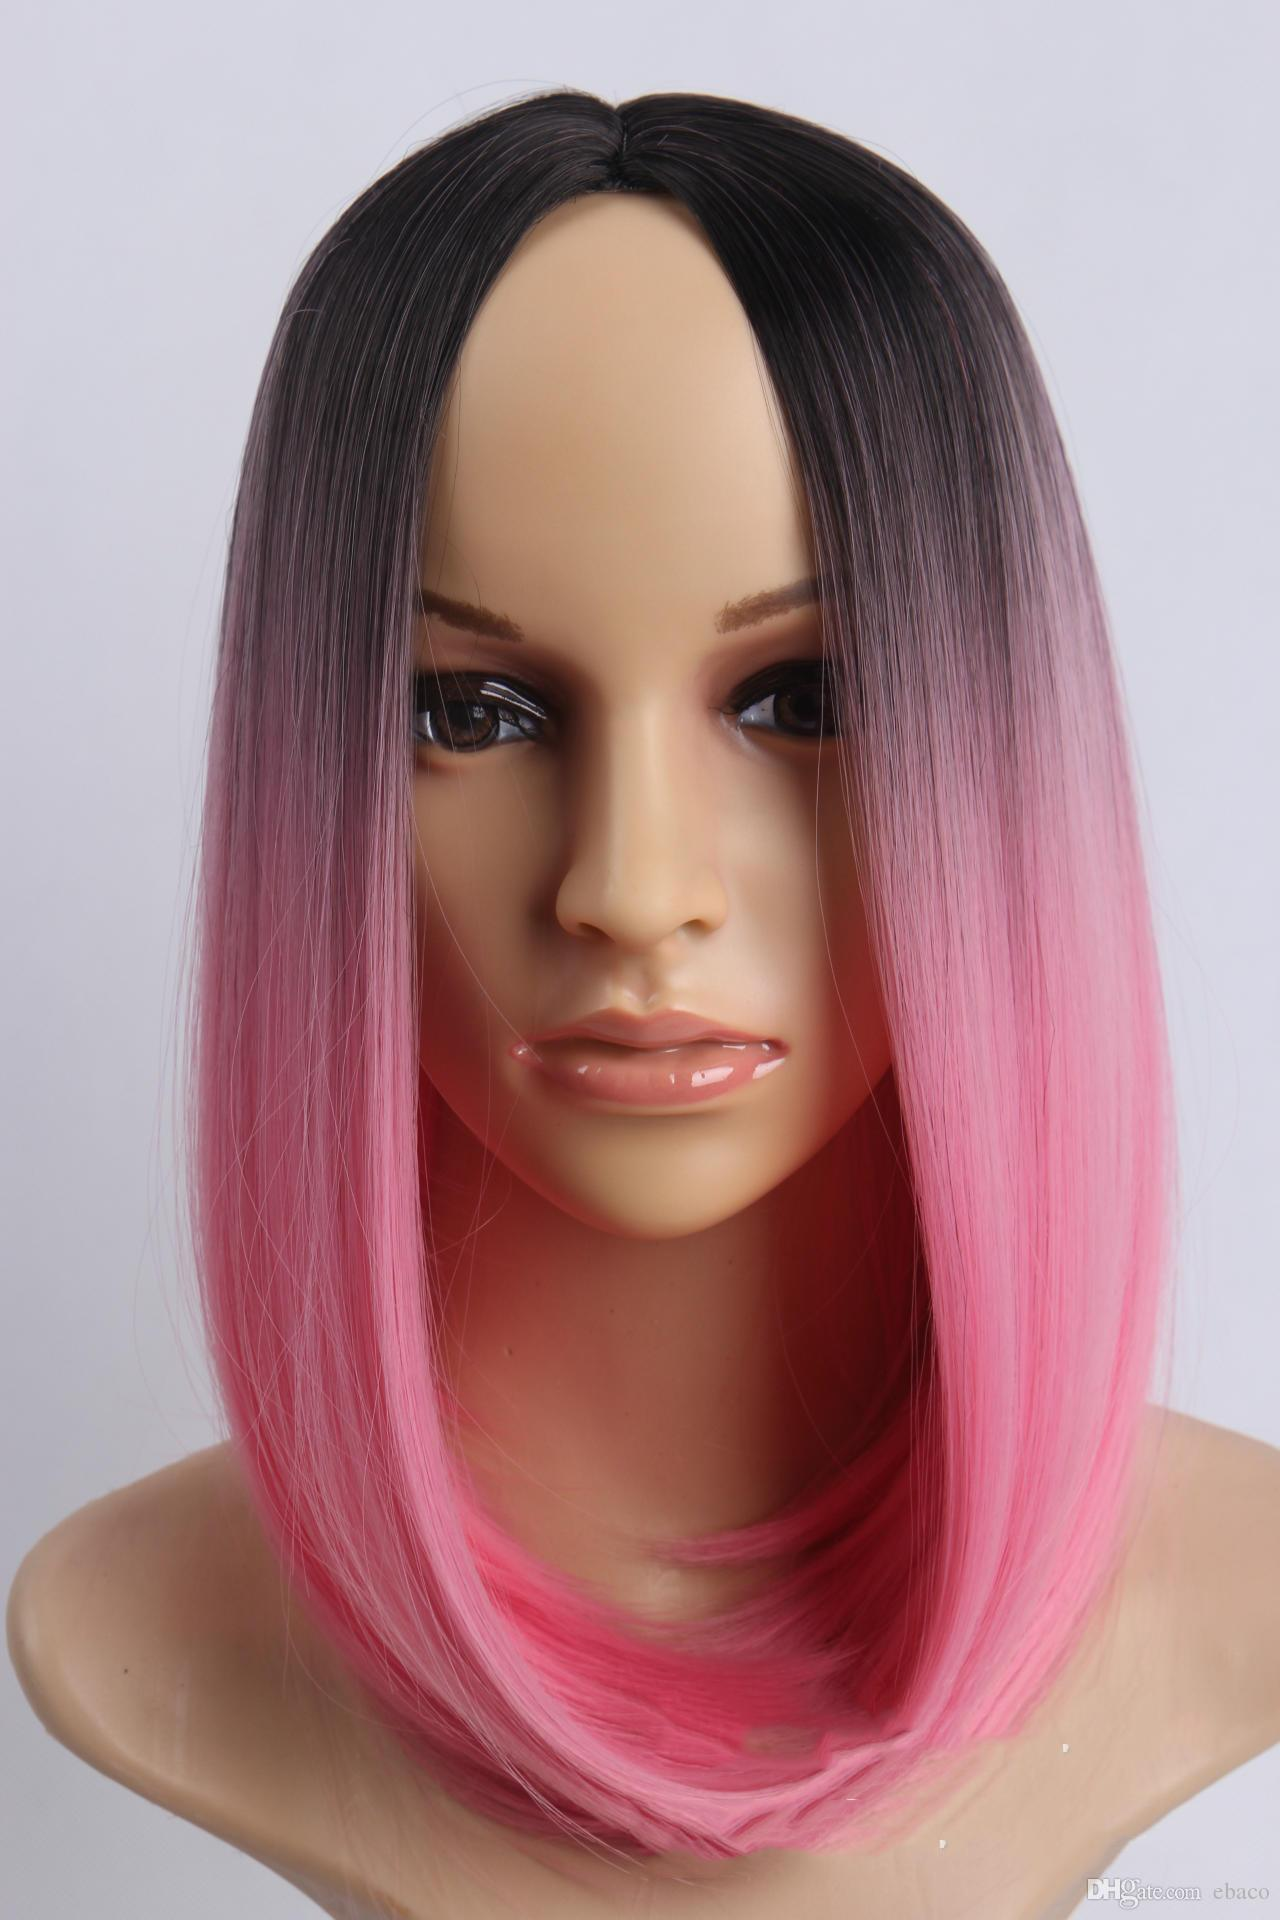 Black To Pink Short Bob Wig Synthetic Lace Front Wig Synthetic Wigs For Black  Women Red Wig Dark Roots Natural Cheap 2017 Jeweled Hair Pins Jeweled Hair  ... 232719e57f